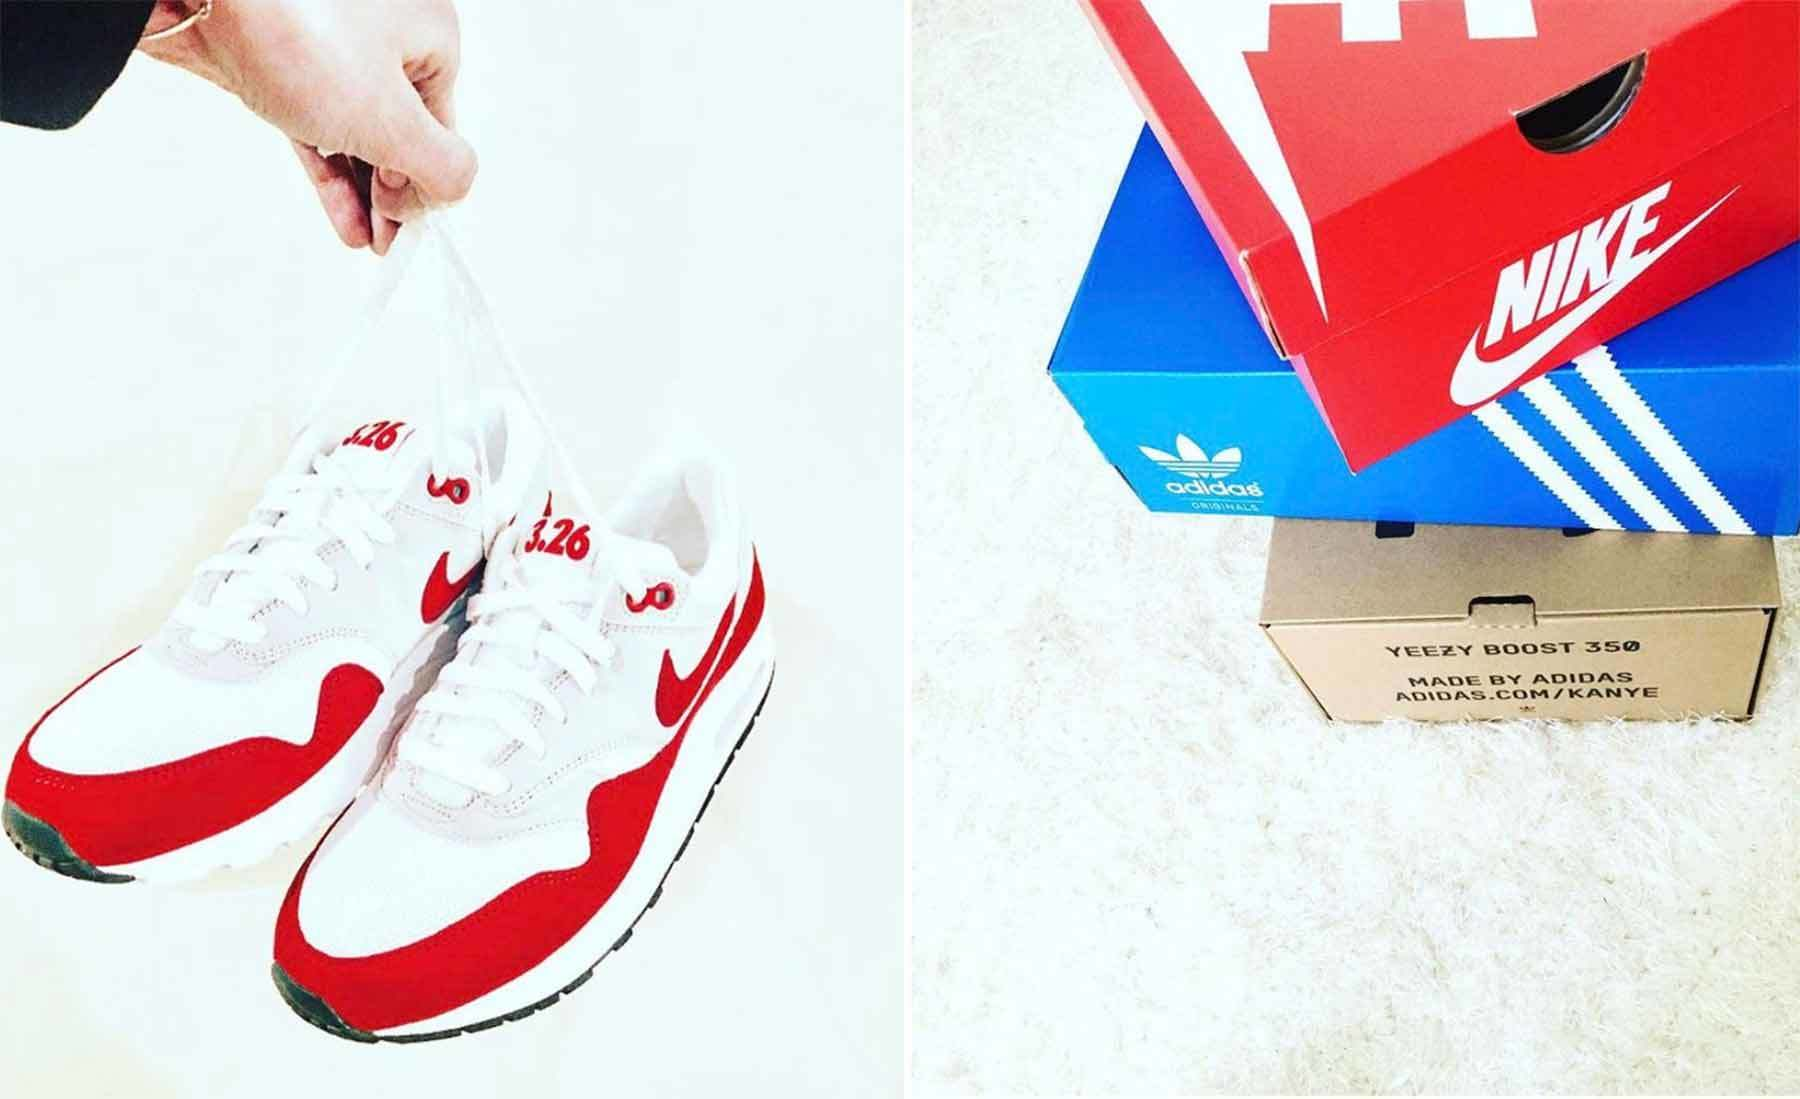 Limited Edition/Special Release Sneakers